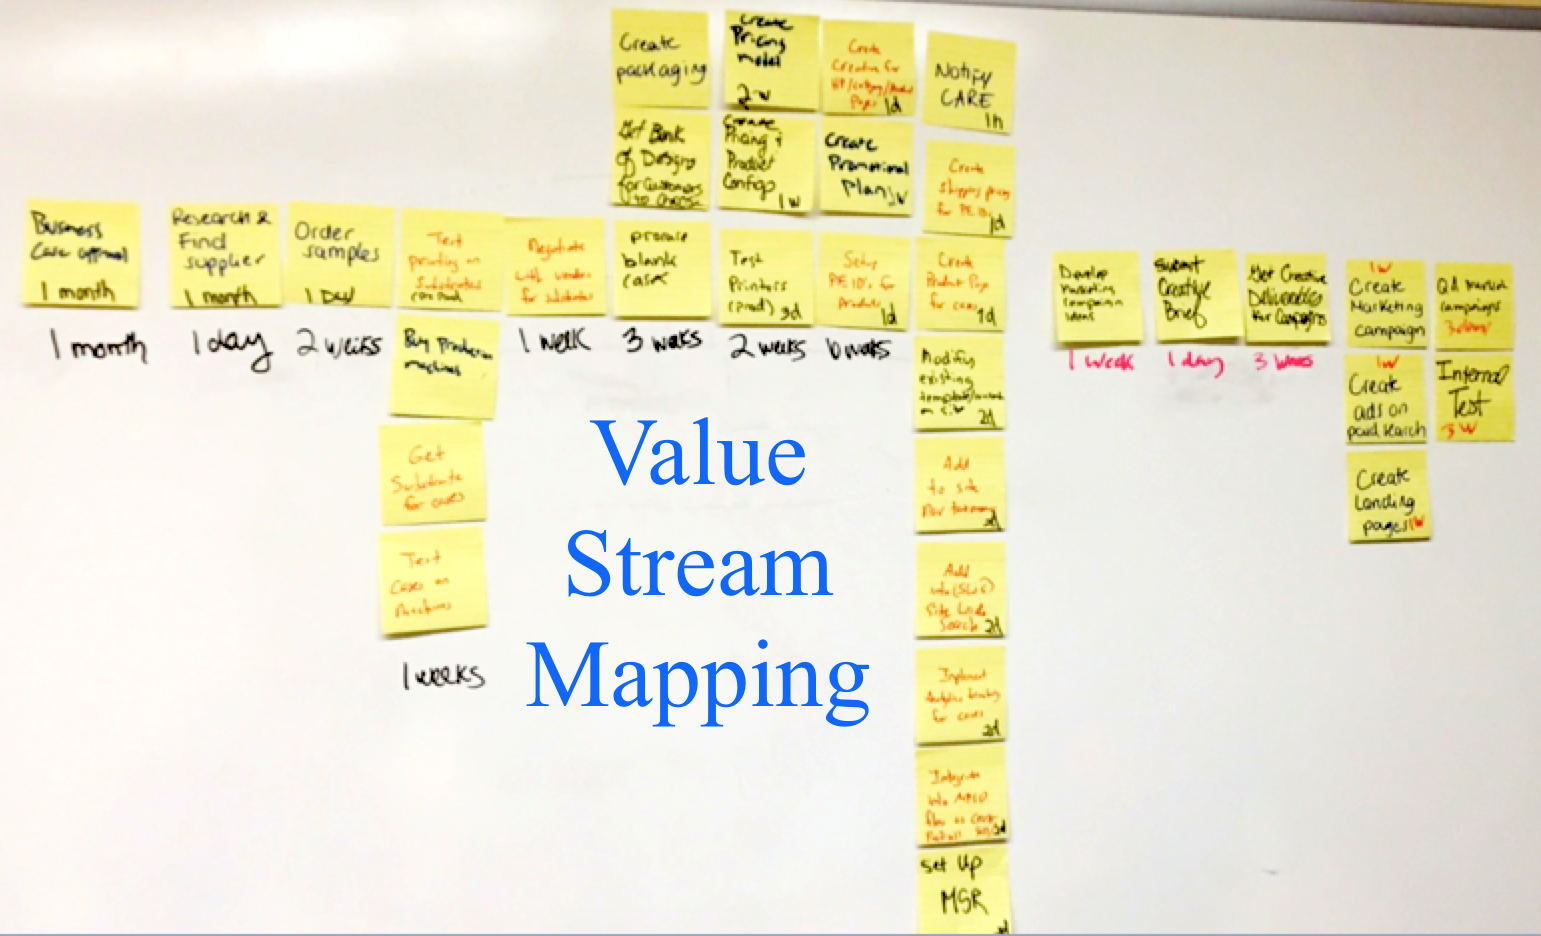 Agile Adoption Roadmap: How Value Stream Mapping can help your Agile on